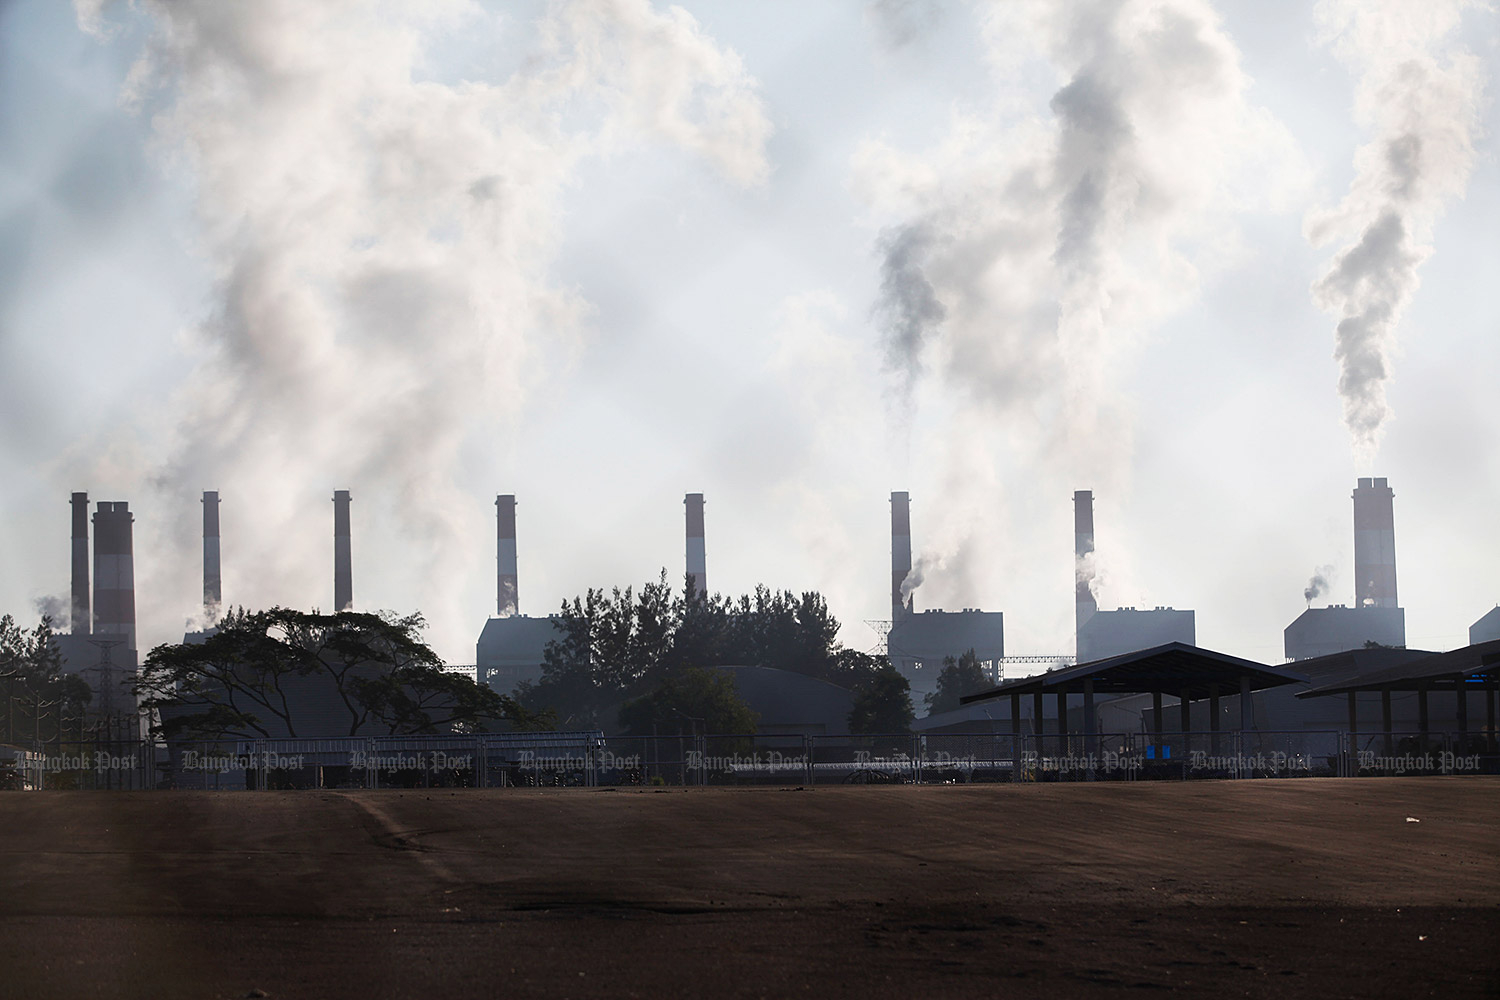 The world's last   coal plant will   soon be built